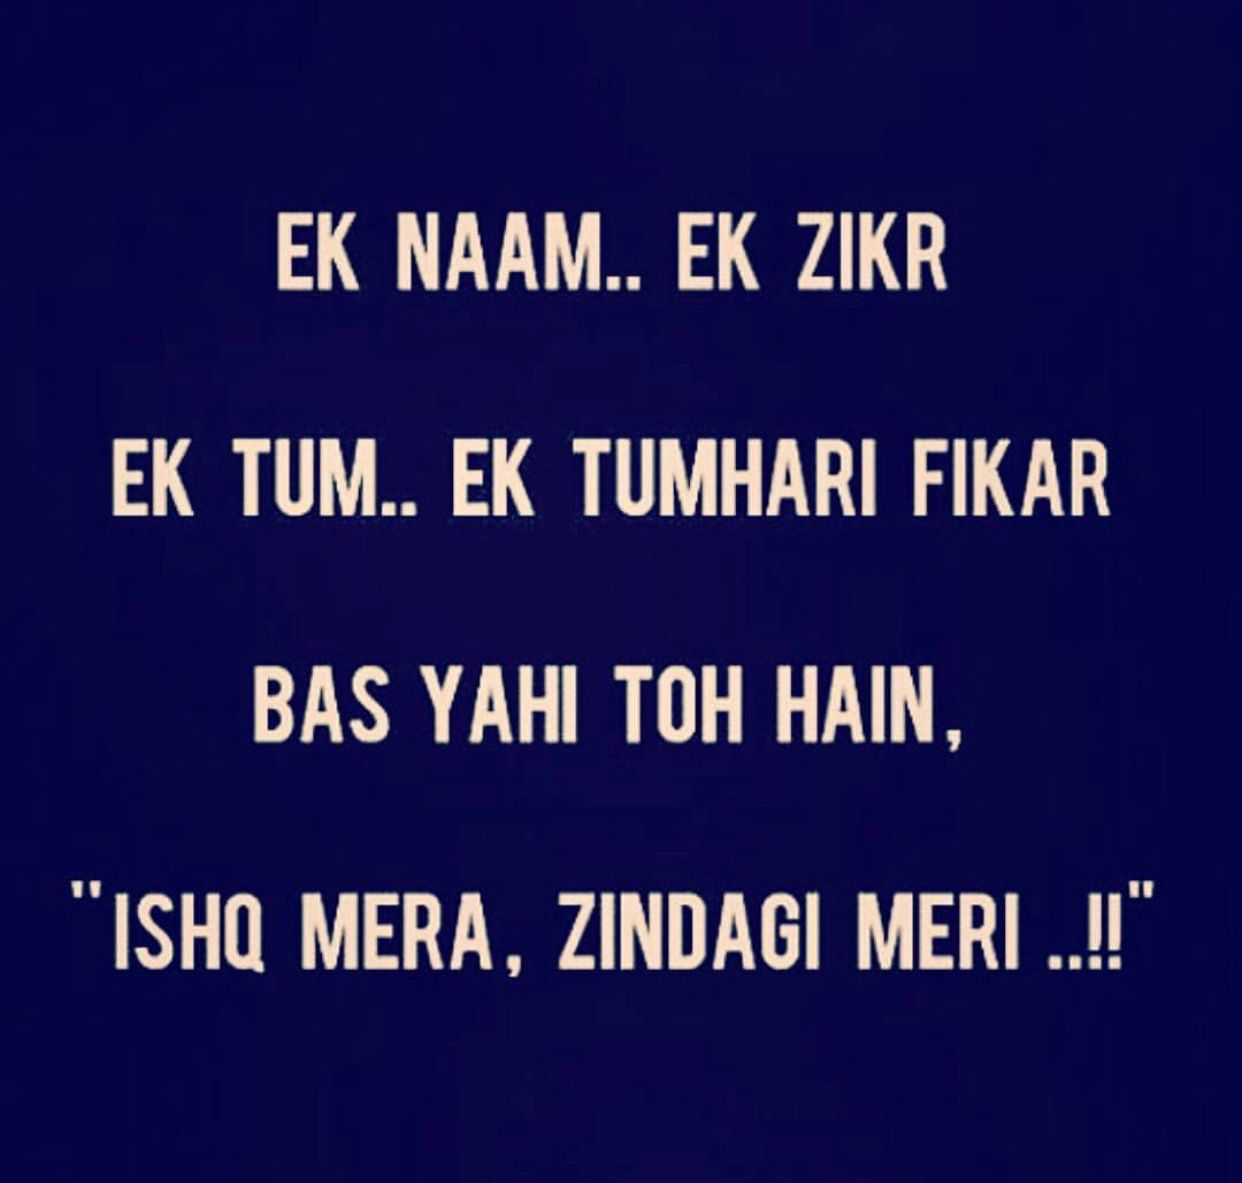 King And Queen Love Quotes Zindgi Meri  Ana  Pinterest  Hindi Quotes Dil Se And Relationships